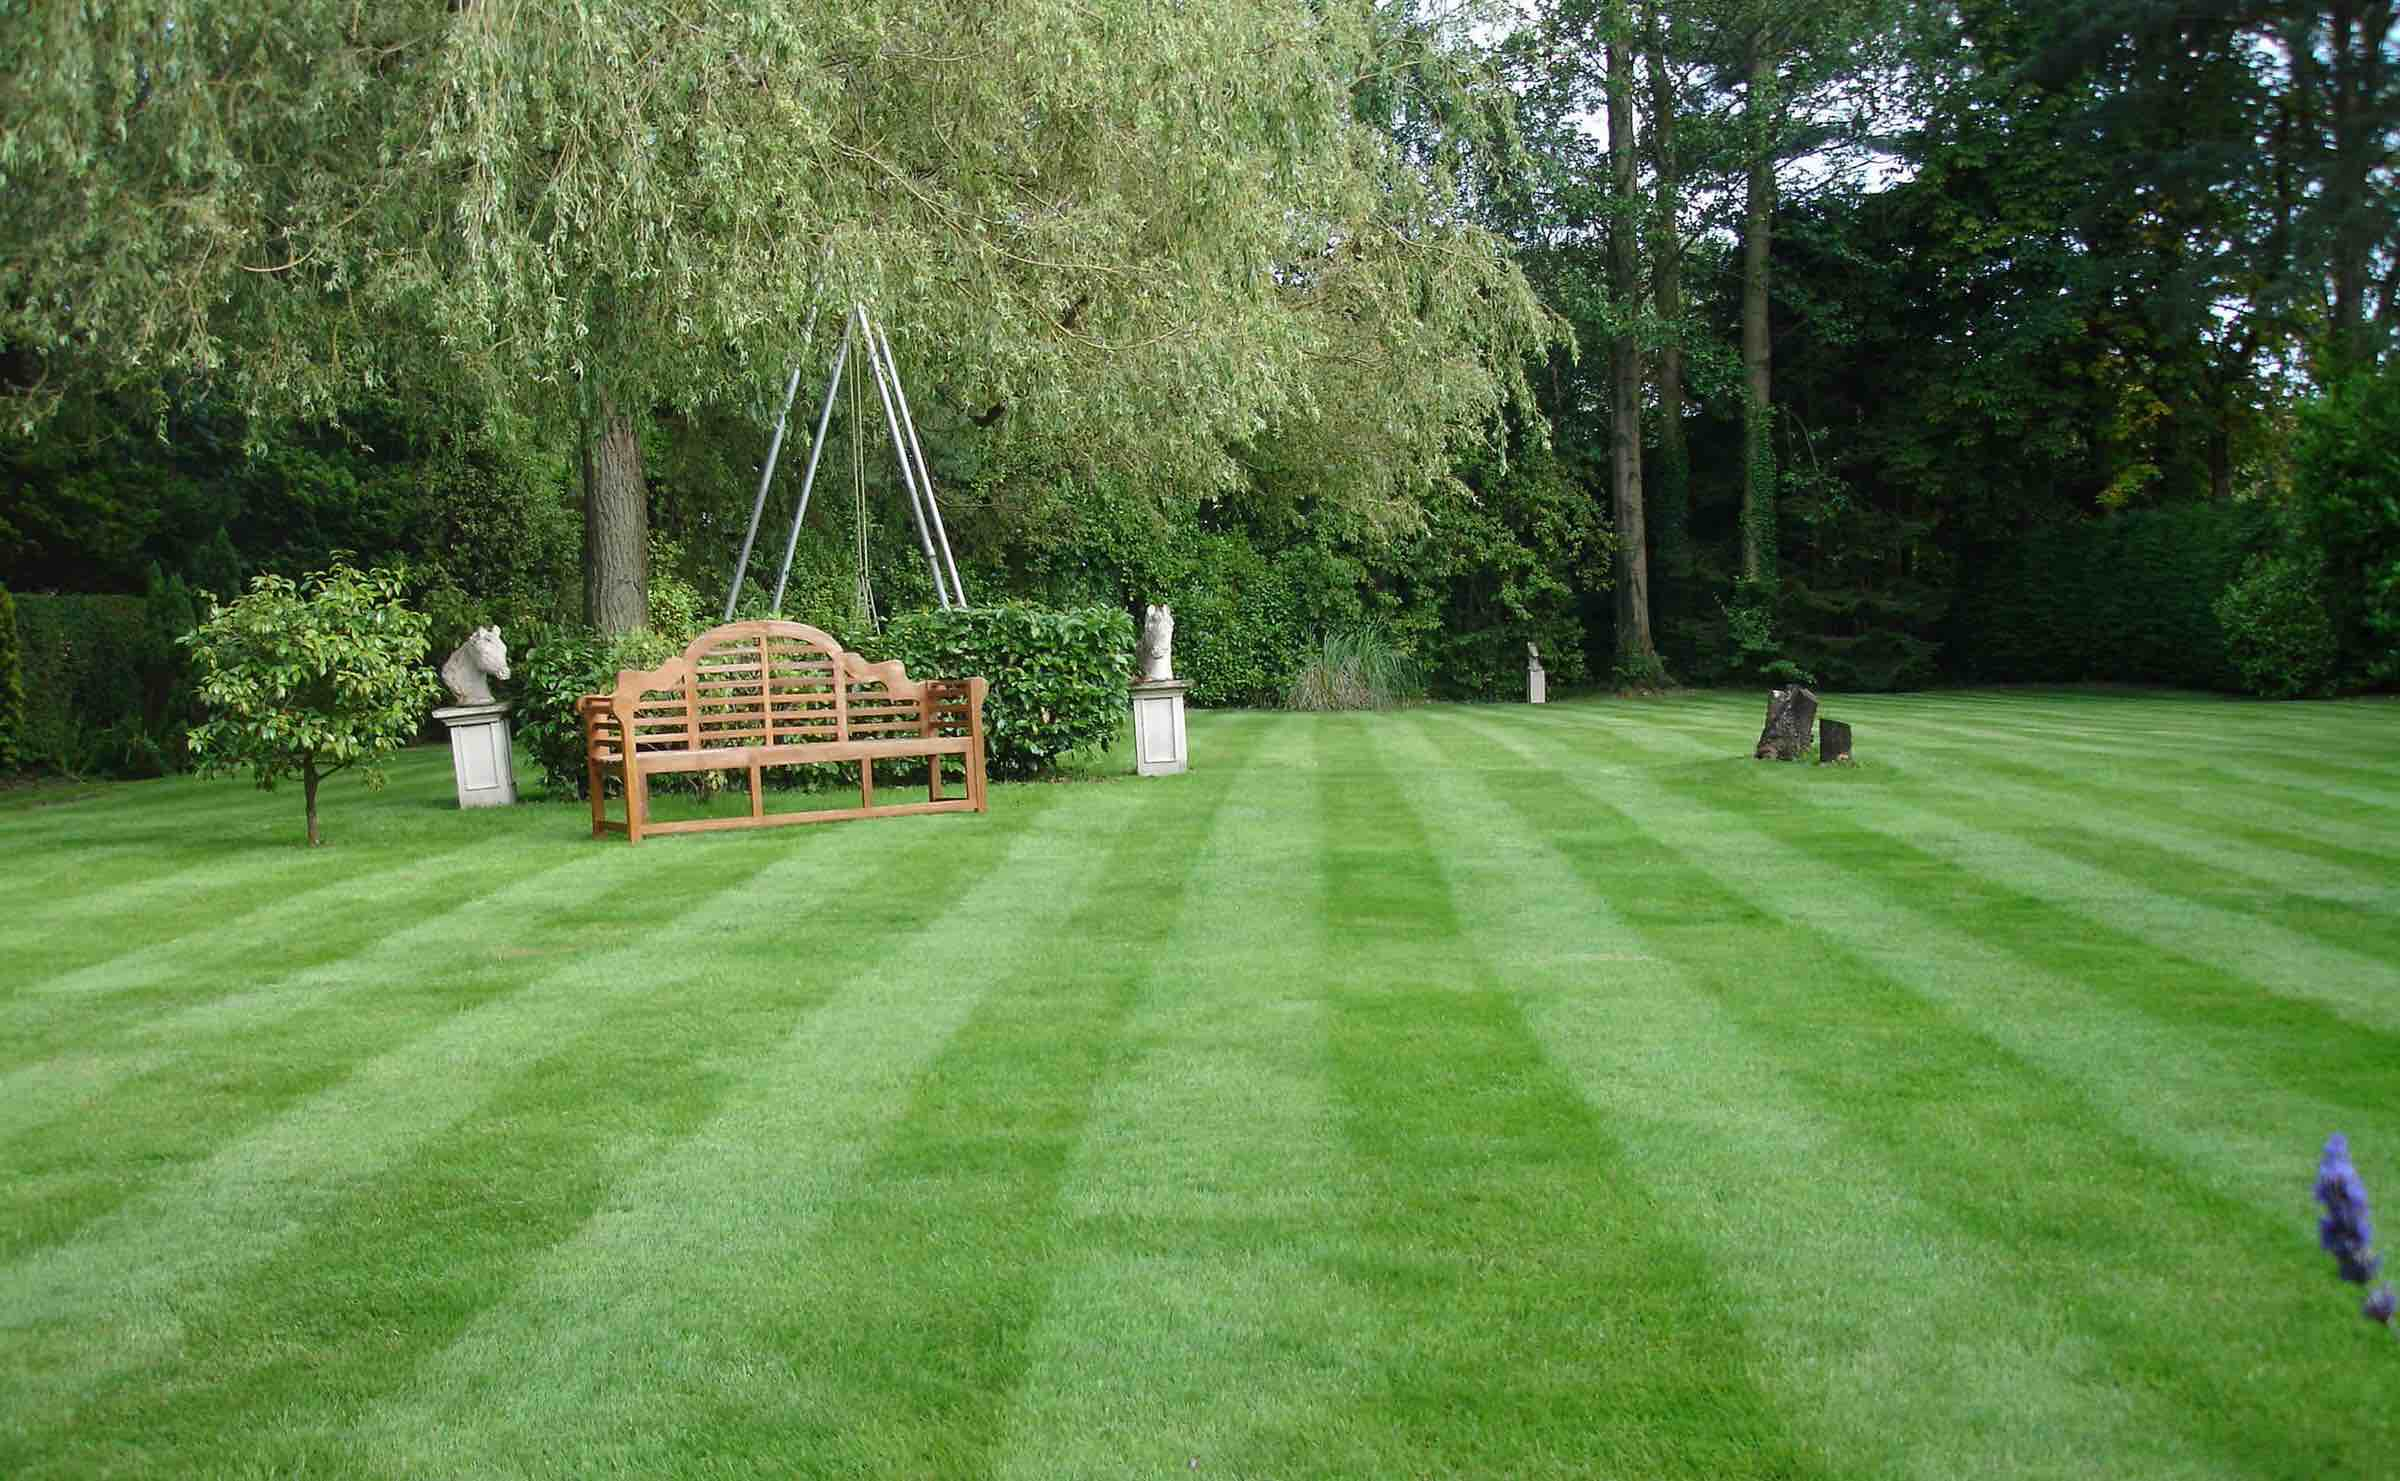 prepare your lawn for summer